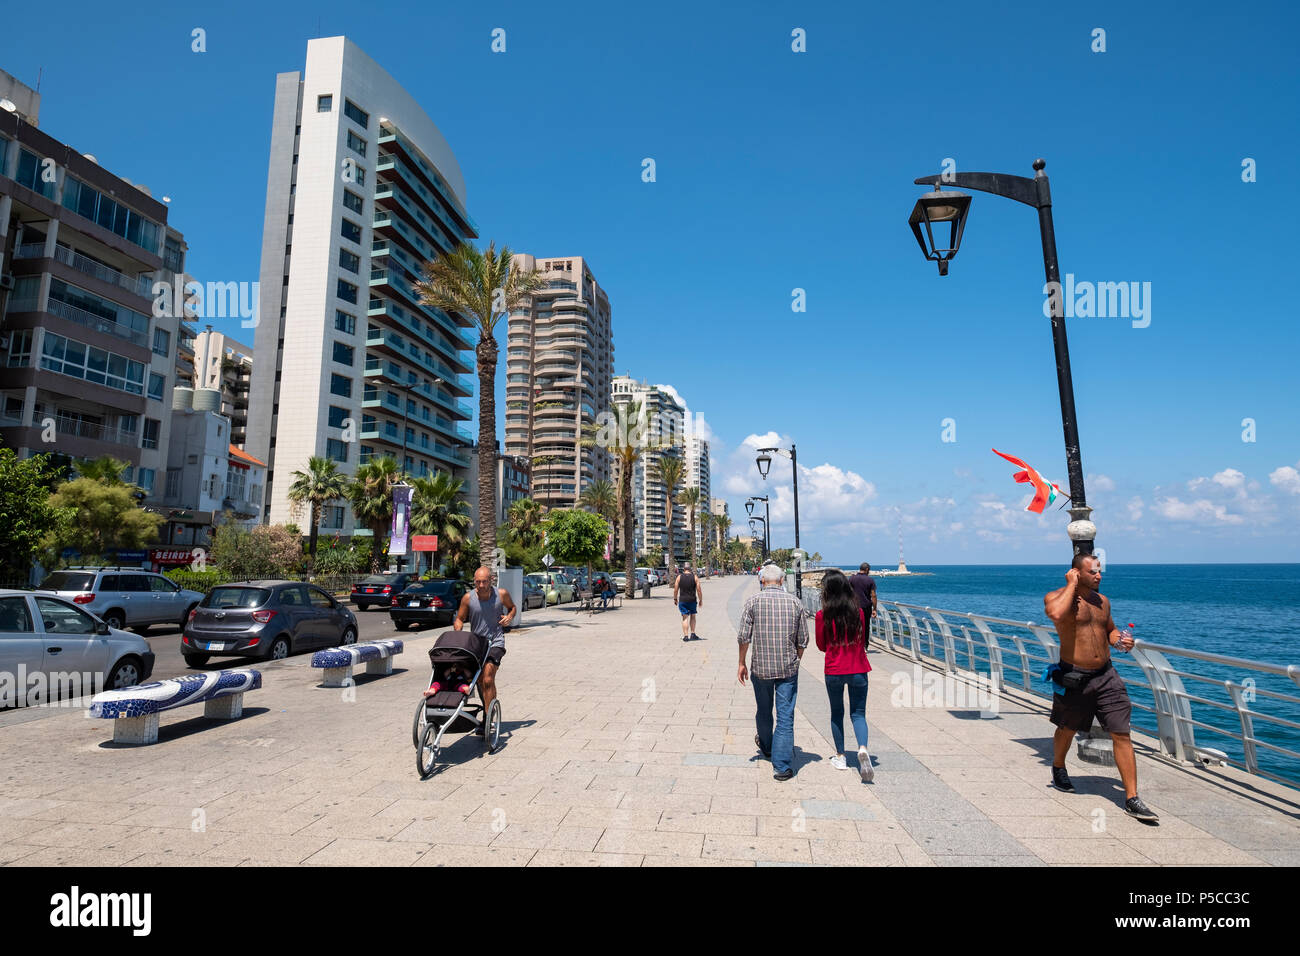 Afficher le long de la Corniche de Beyrouth, Liban. Photo Stock